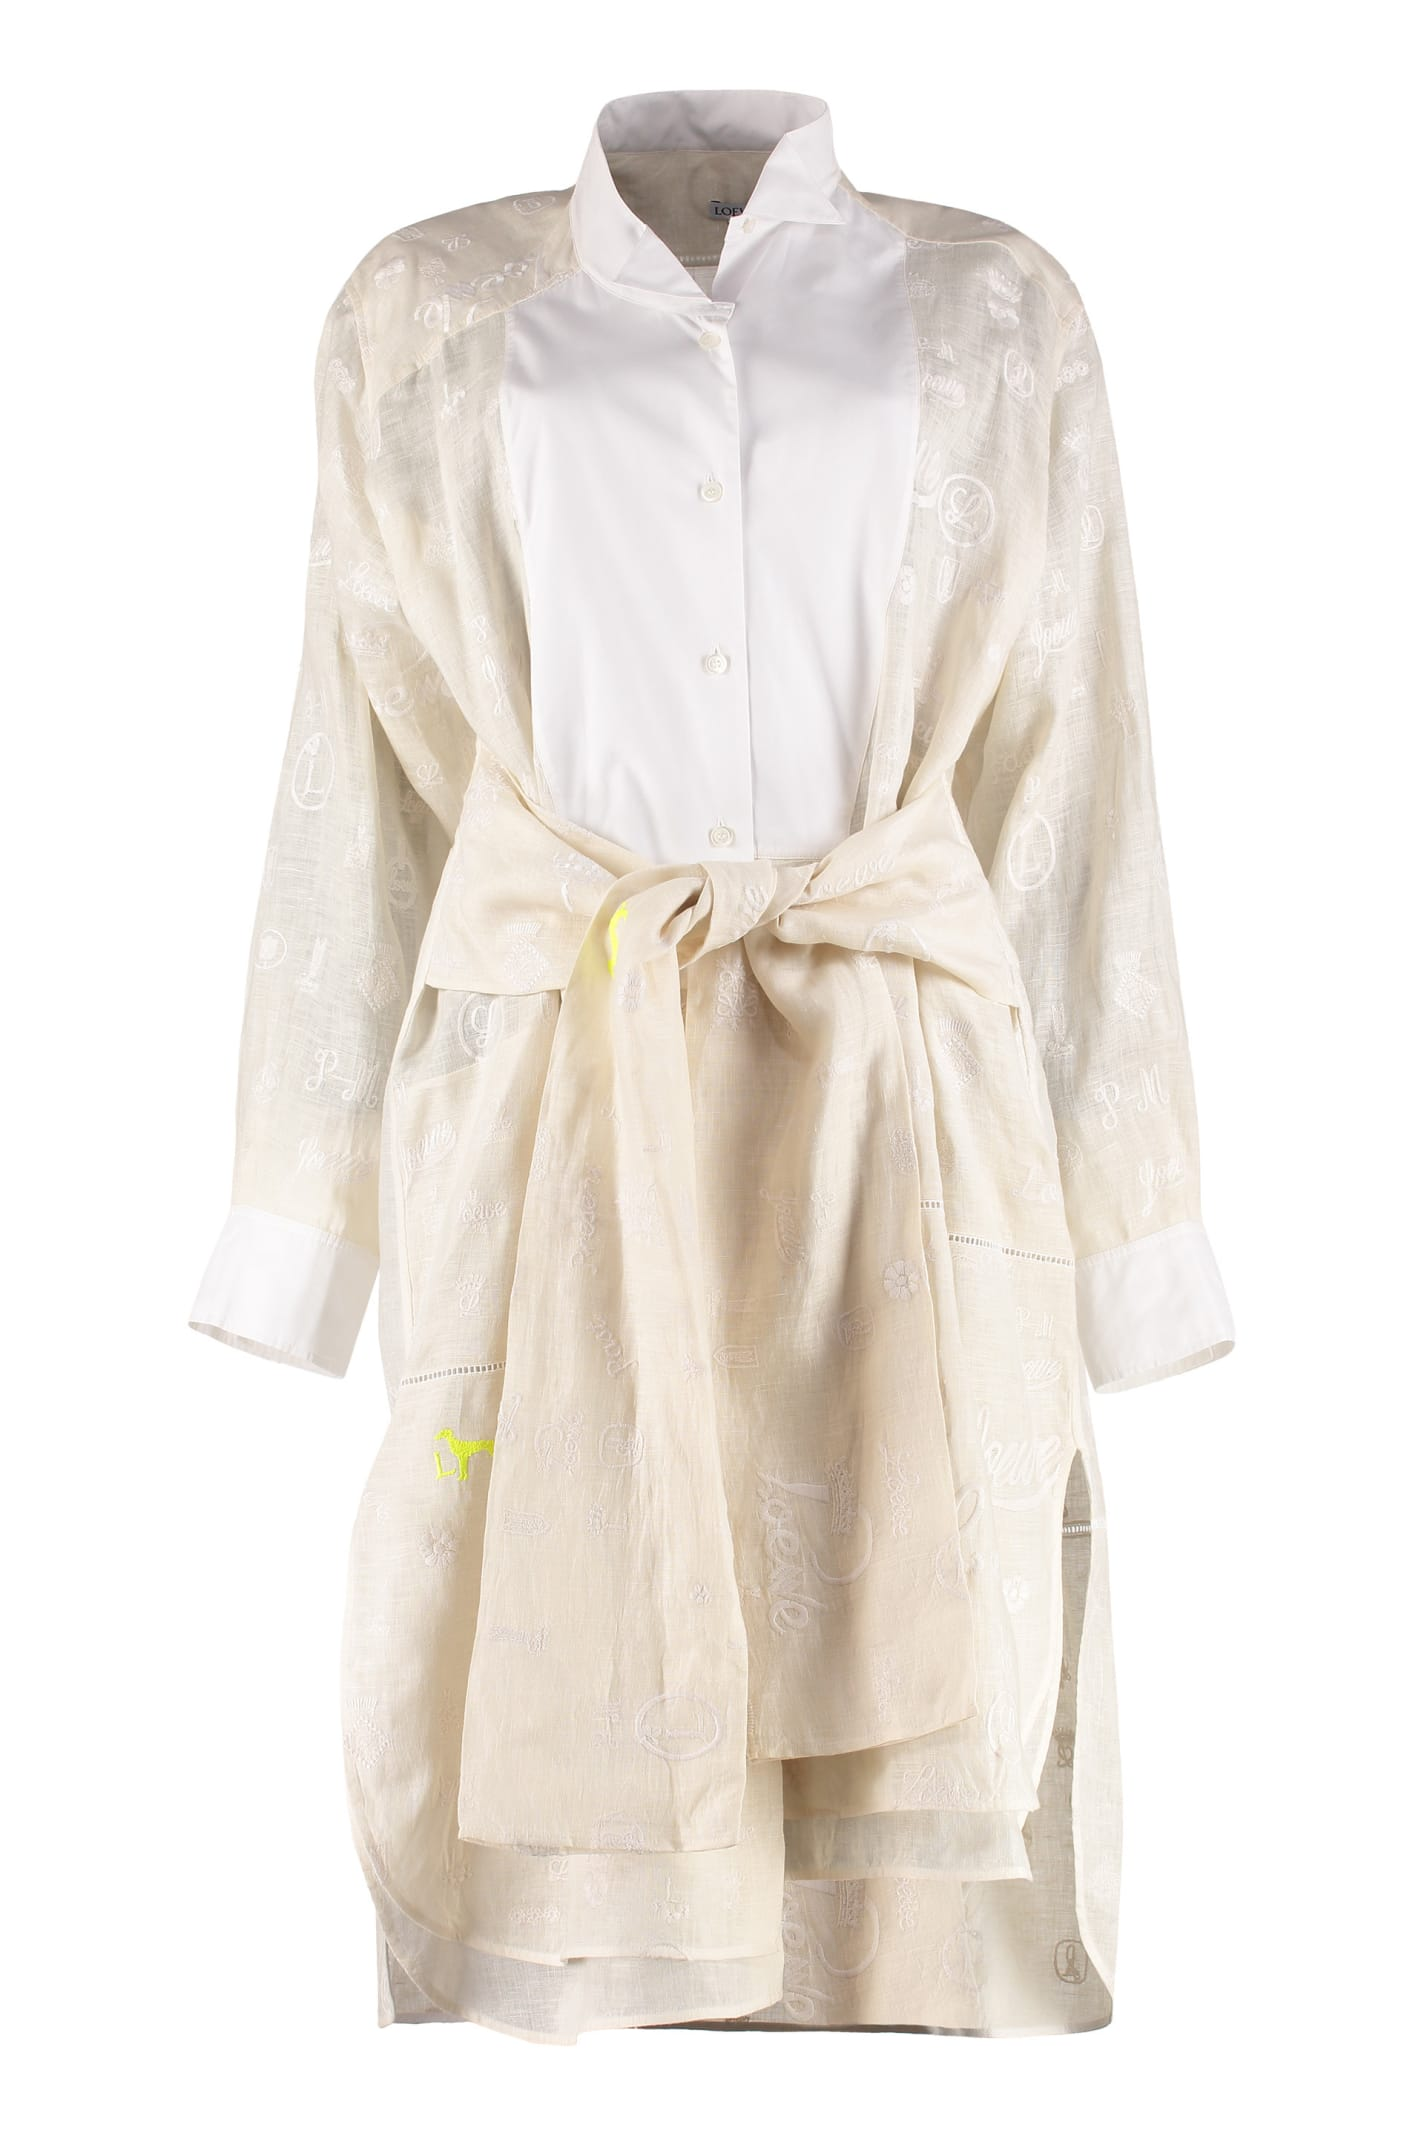 Photo of  Loewe Embroidered Linen Shirtdress- shop Loewe  online sales